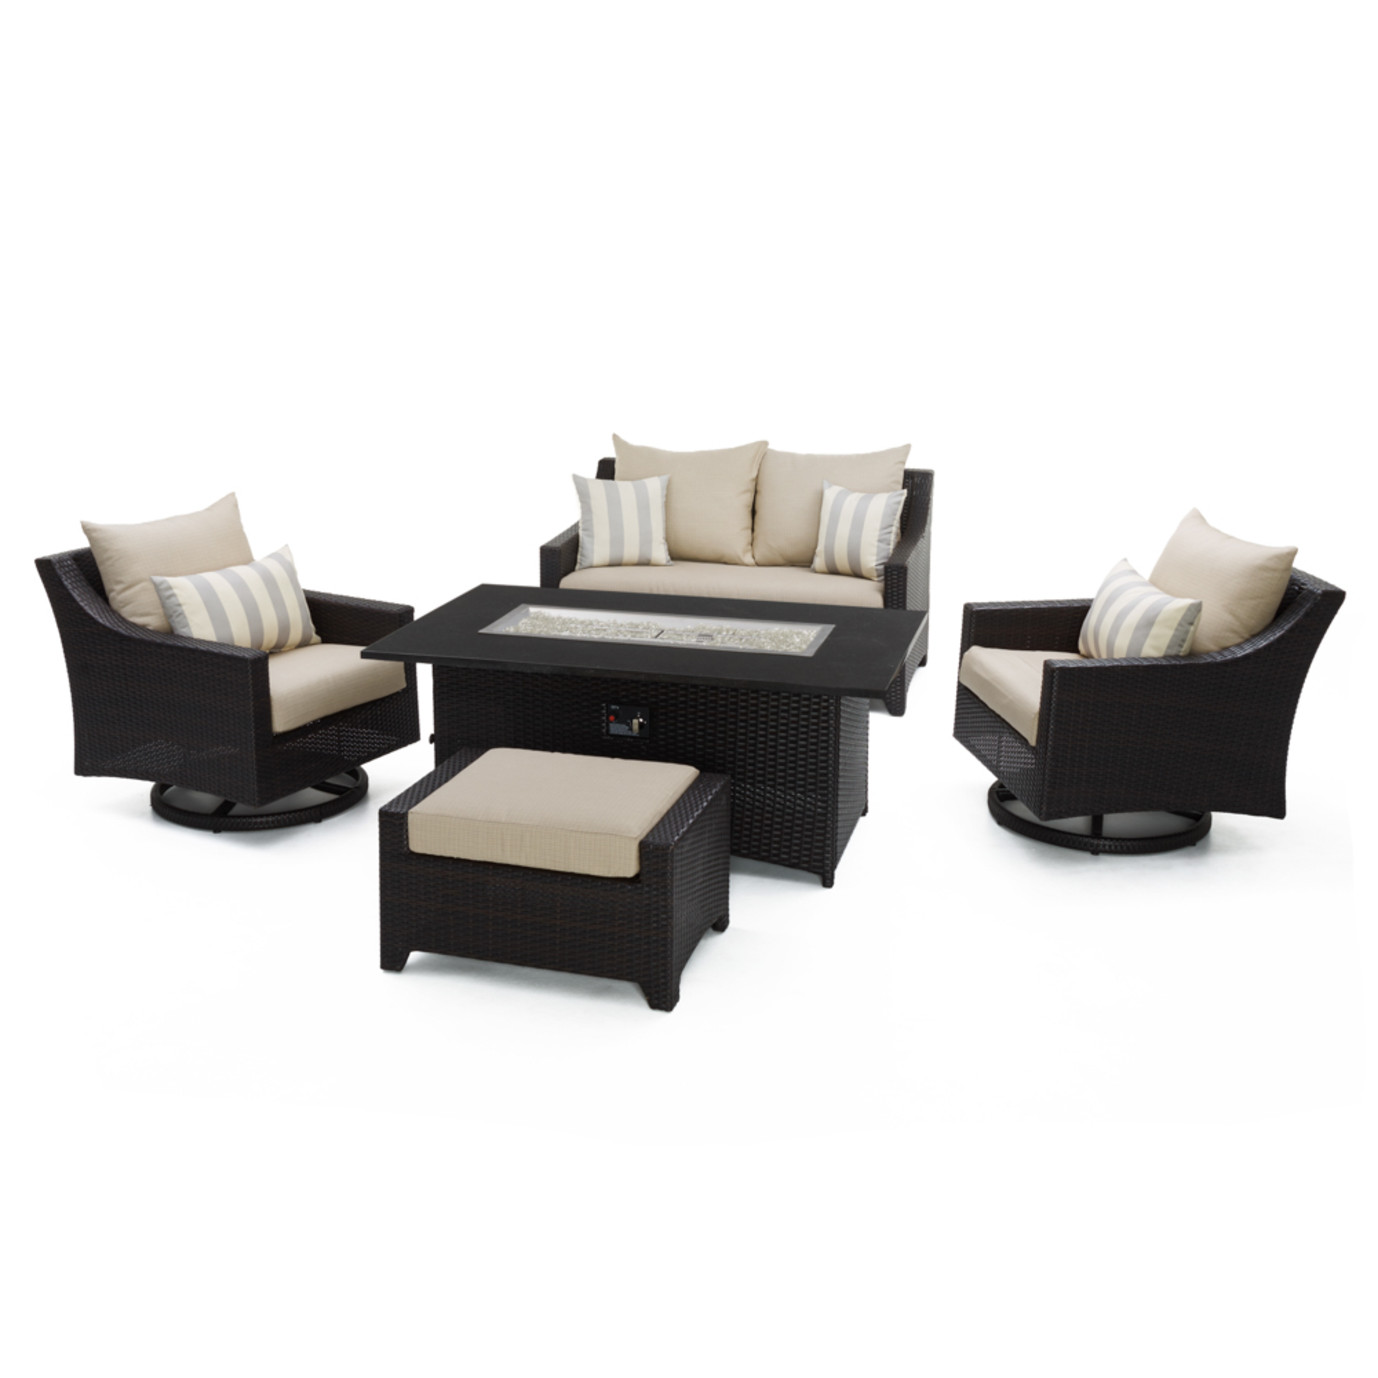 Deco™ 5pc Love and Motion Club Fire Set in Slate Grey